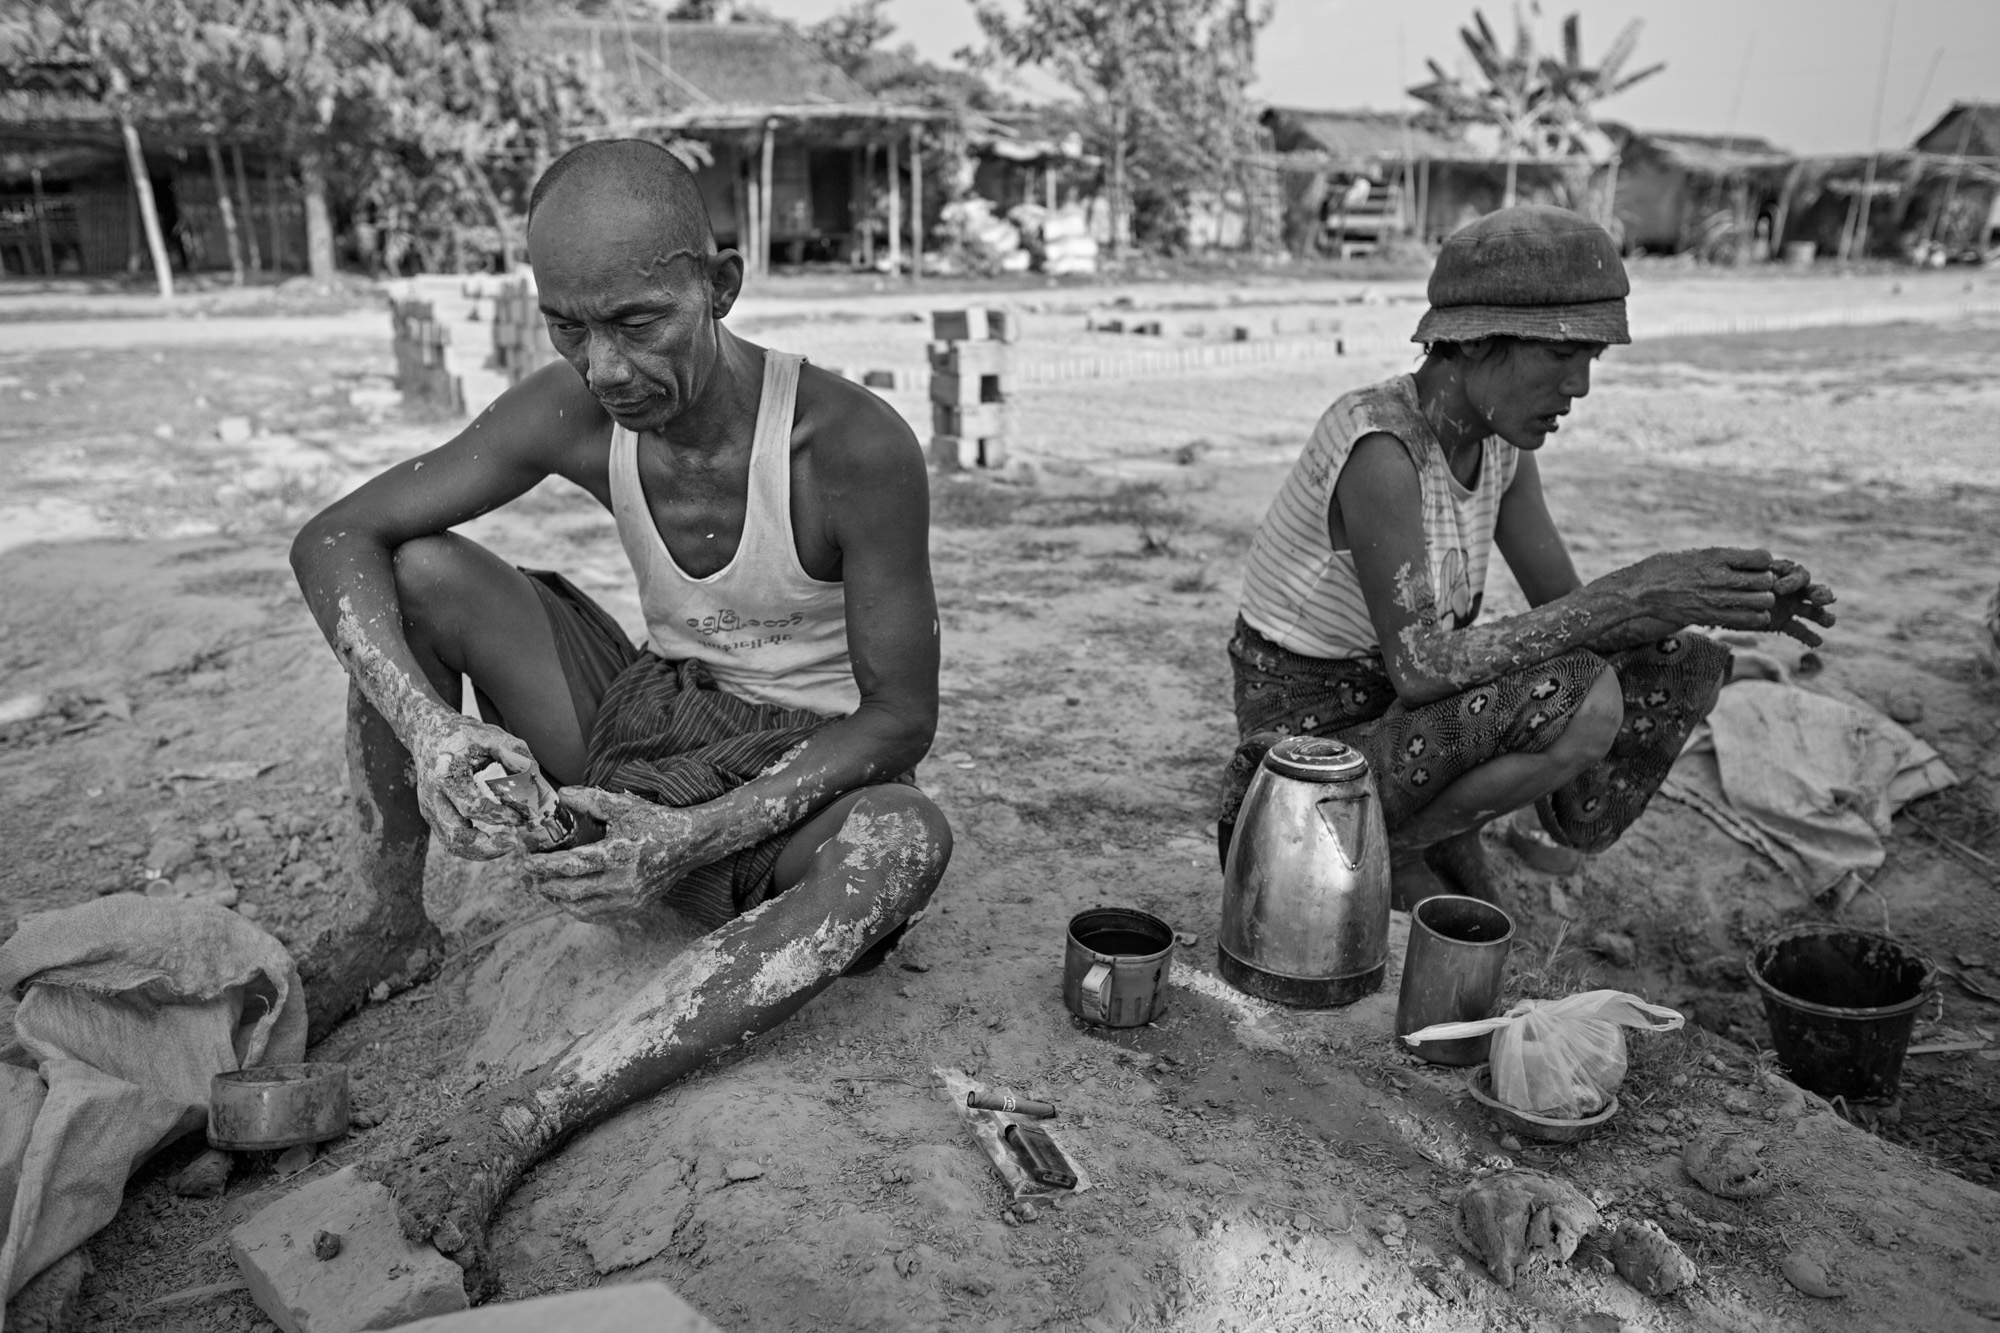 Naing Lin and Than Nwe rest during midday. They subsisted on very little, often eating only two sparse meals per day. For the most part they drank only a little tea, smoked cheroots (local cigars), or chewed betel nut (a natural stimulant), to get through the day.